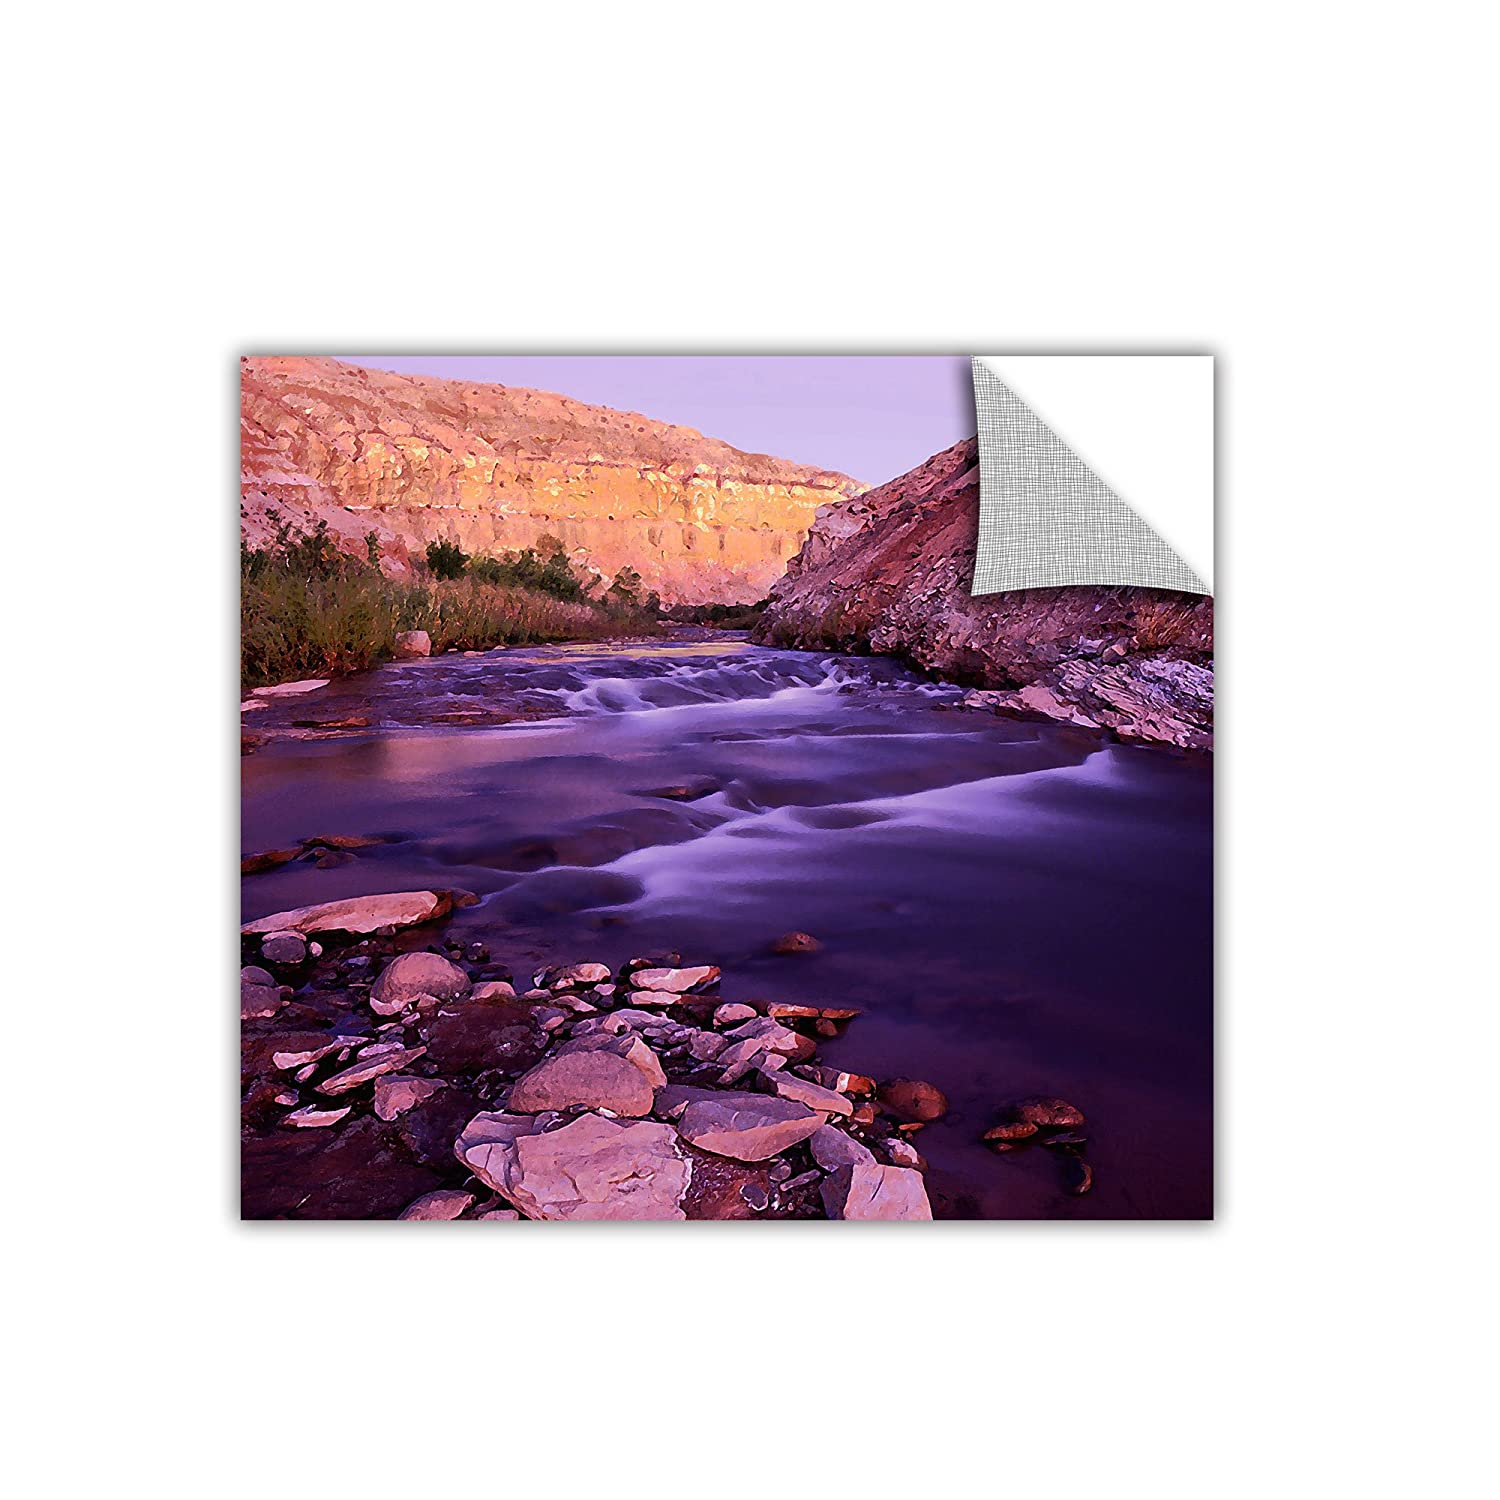 ArtWall Appealz Dean Uhlinger Fremont River Dawn Removable Wall Graphic 24 by 24-Inch